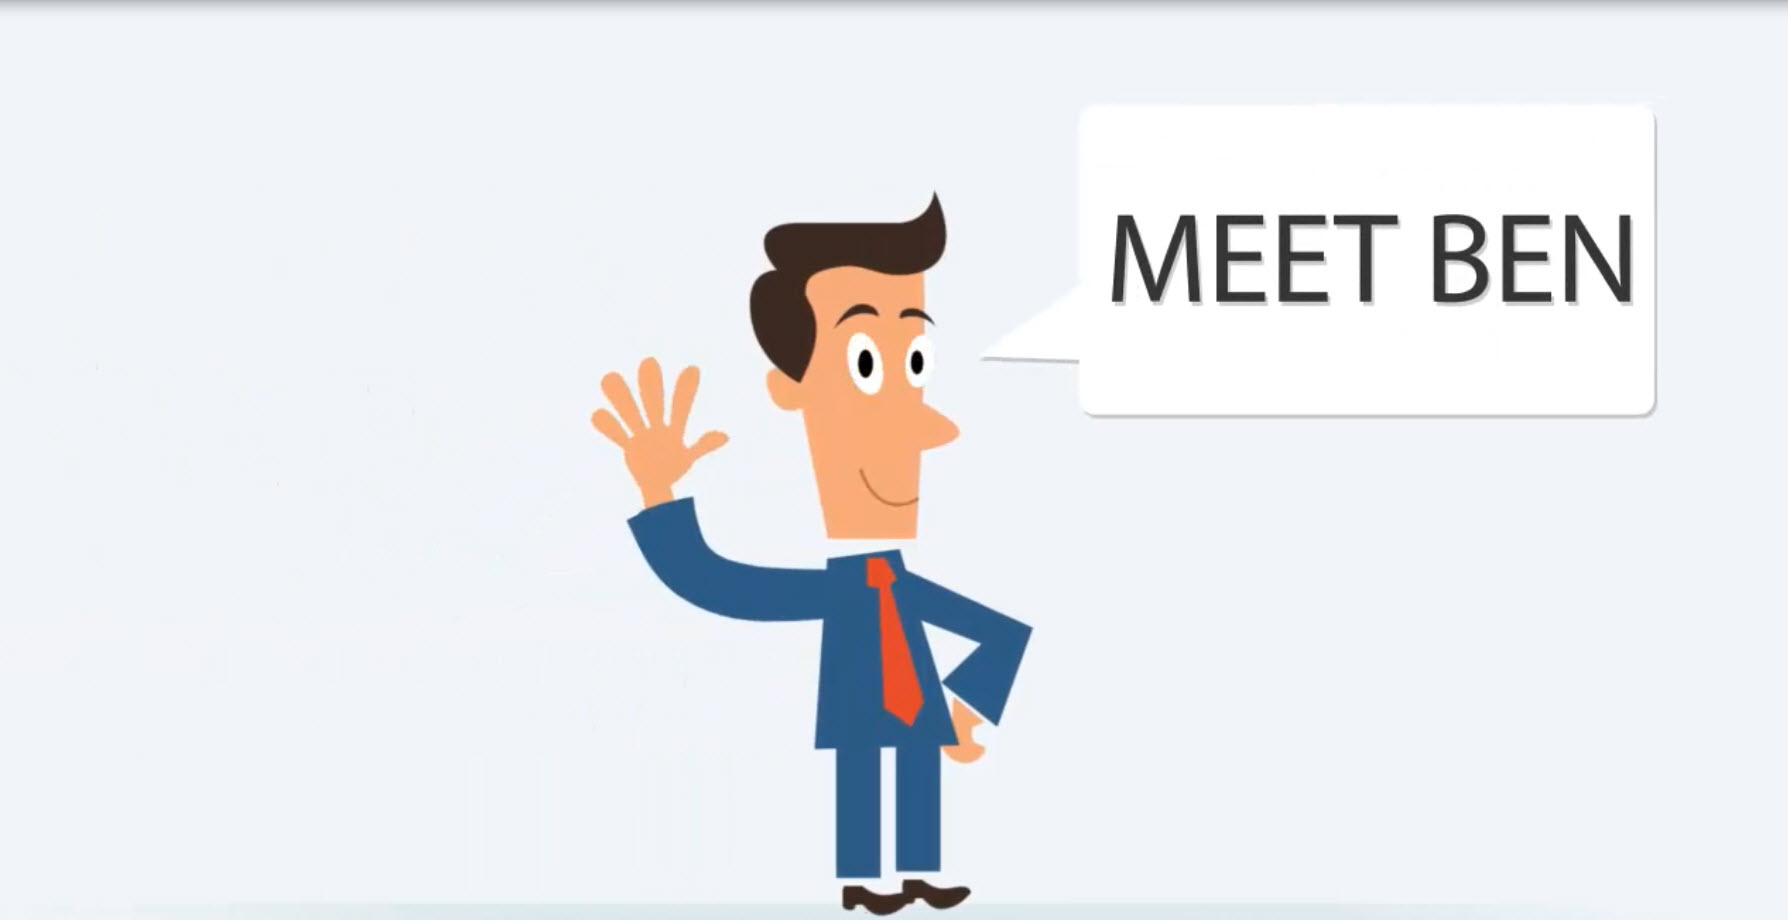 I create a Business whiteboard animation video